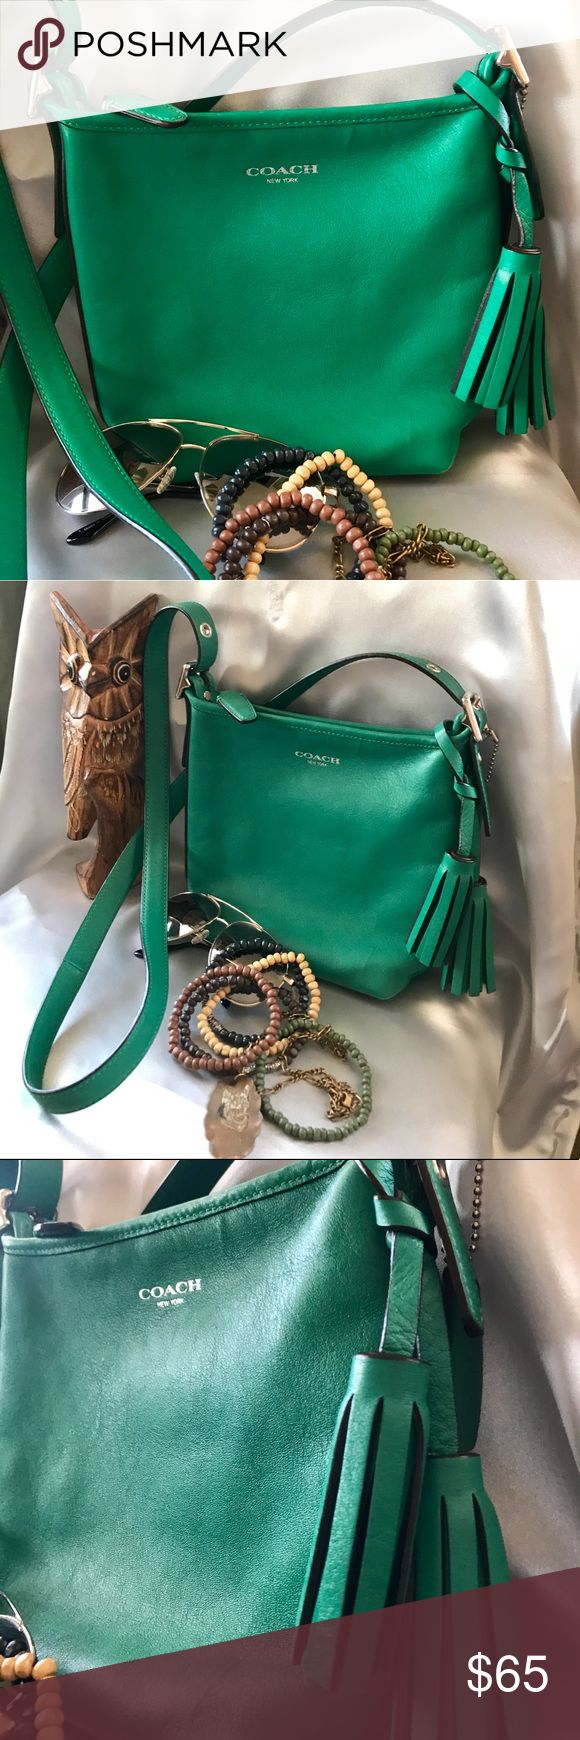 Coach Legacy Collection Crossbody - Emerald Green Mint Condition! Practically Brand New! No signs of wear! Smoke Free Environment! Measurements: 7.5'' x 8'' Coach Bags Crossbody Bags